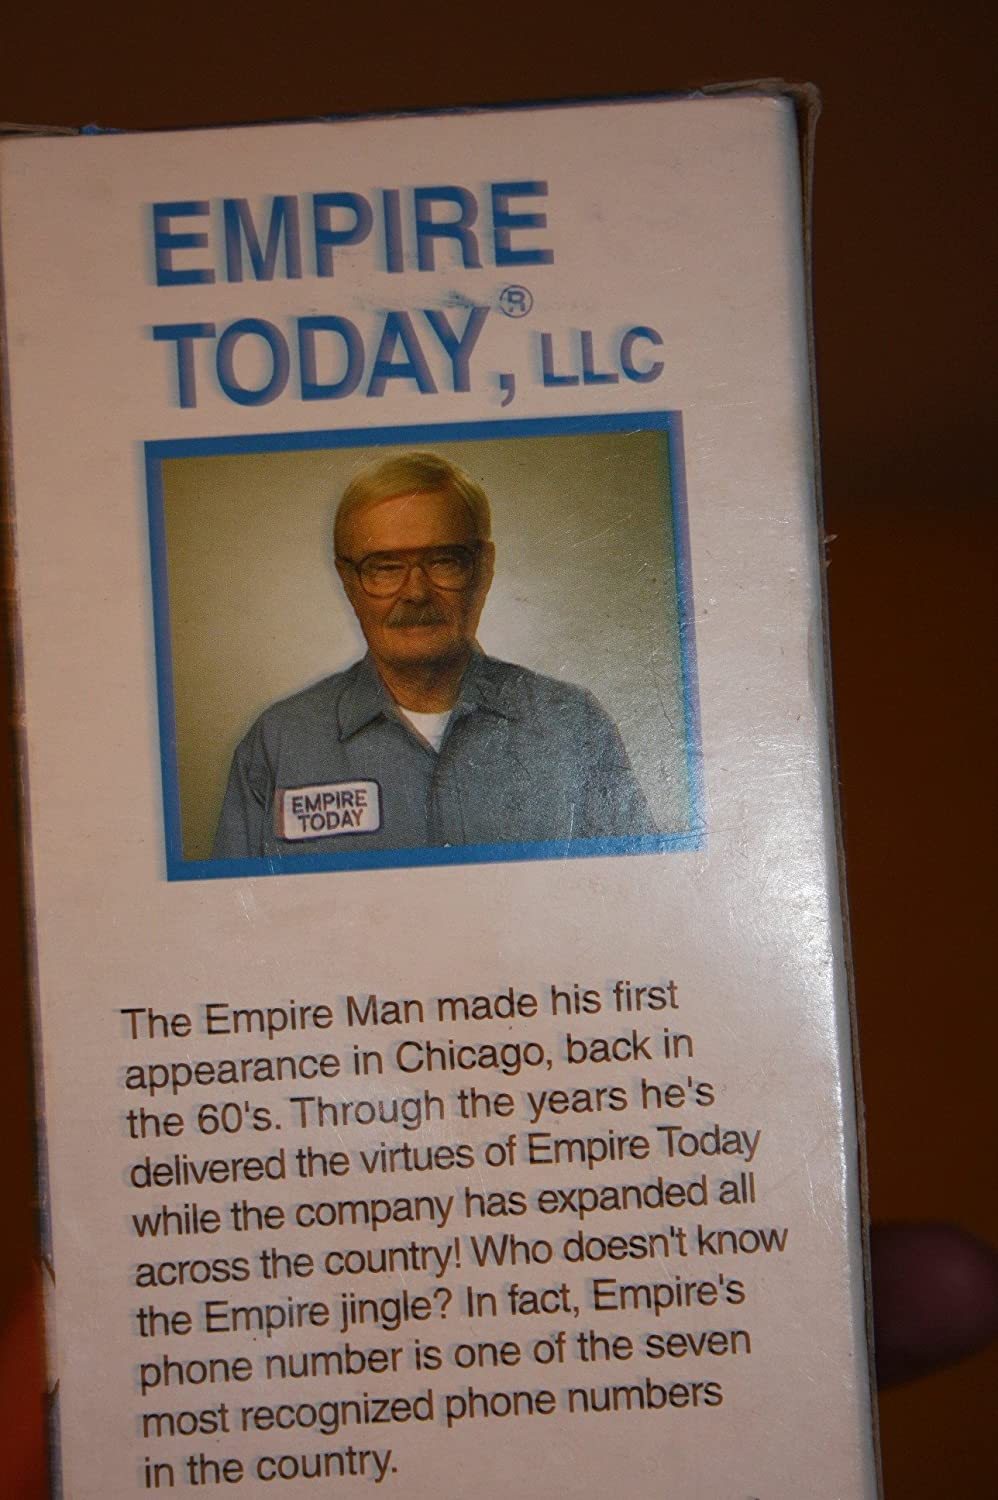 who is empire today